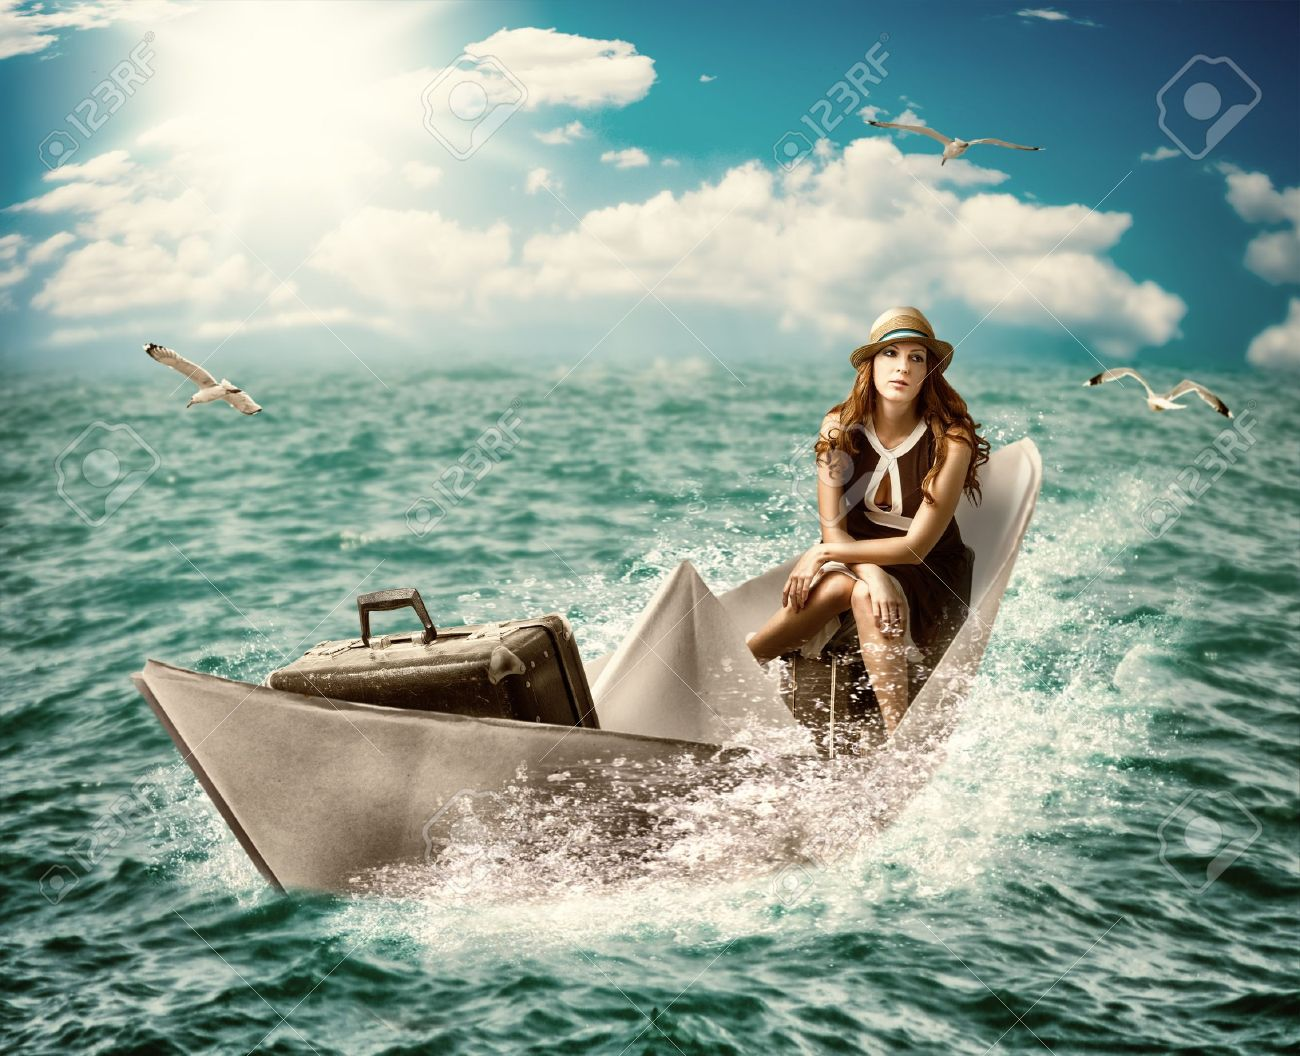 dreaming about sea cruise around the world.Woman with luggage floats on the paper boat on the ocean Stock Photo - 20258588